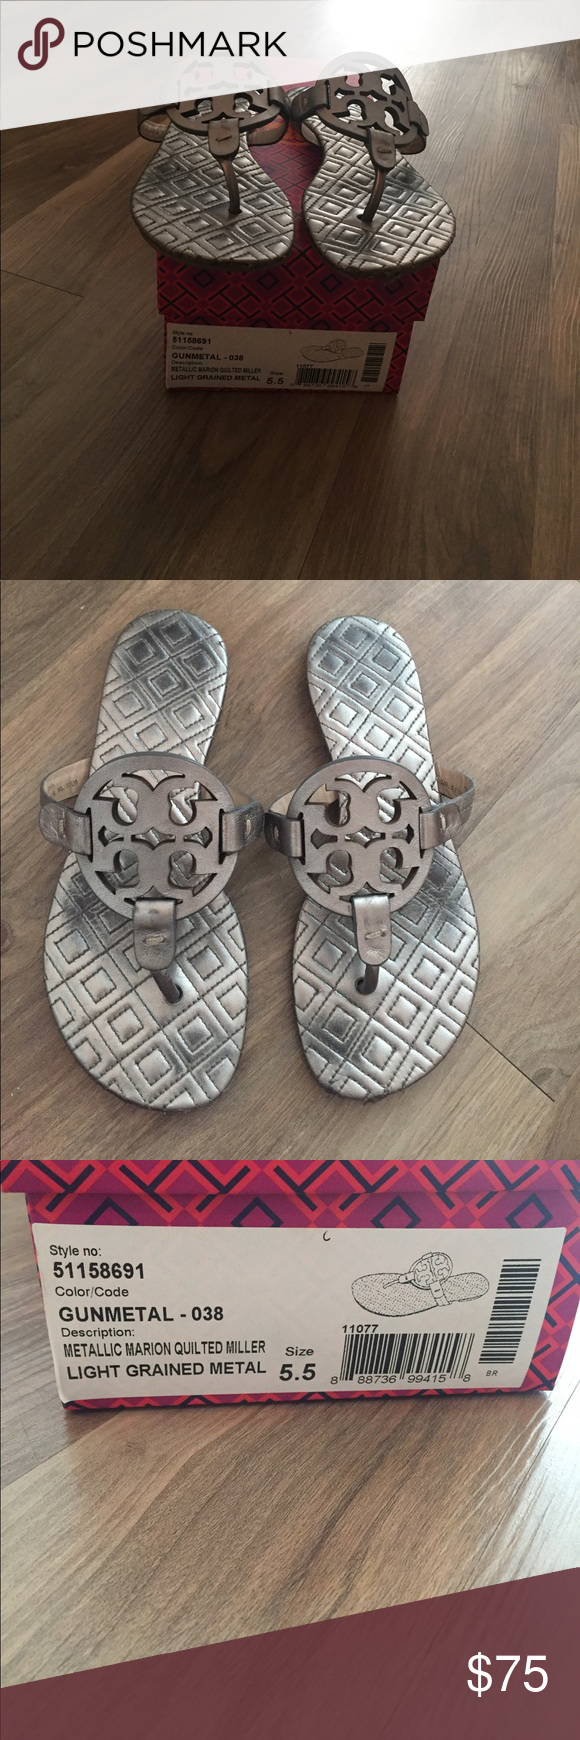 a6b4f12e99d4ea Tory Burch Metallic Miller sandals size 5.5 Tory Burch Metallic Marion  Quilted Miller sandals size 5.5